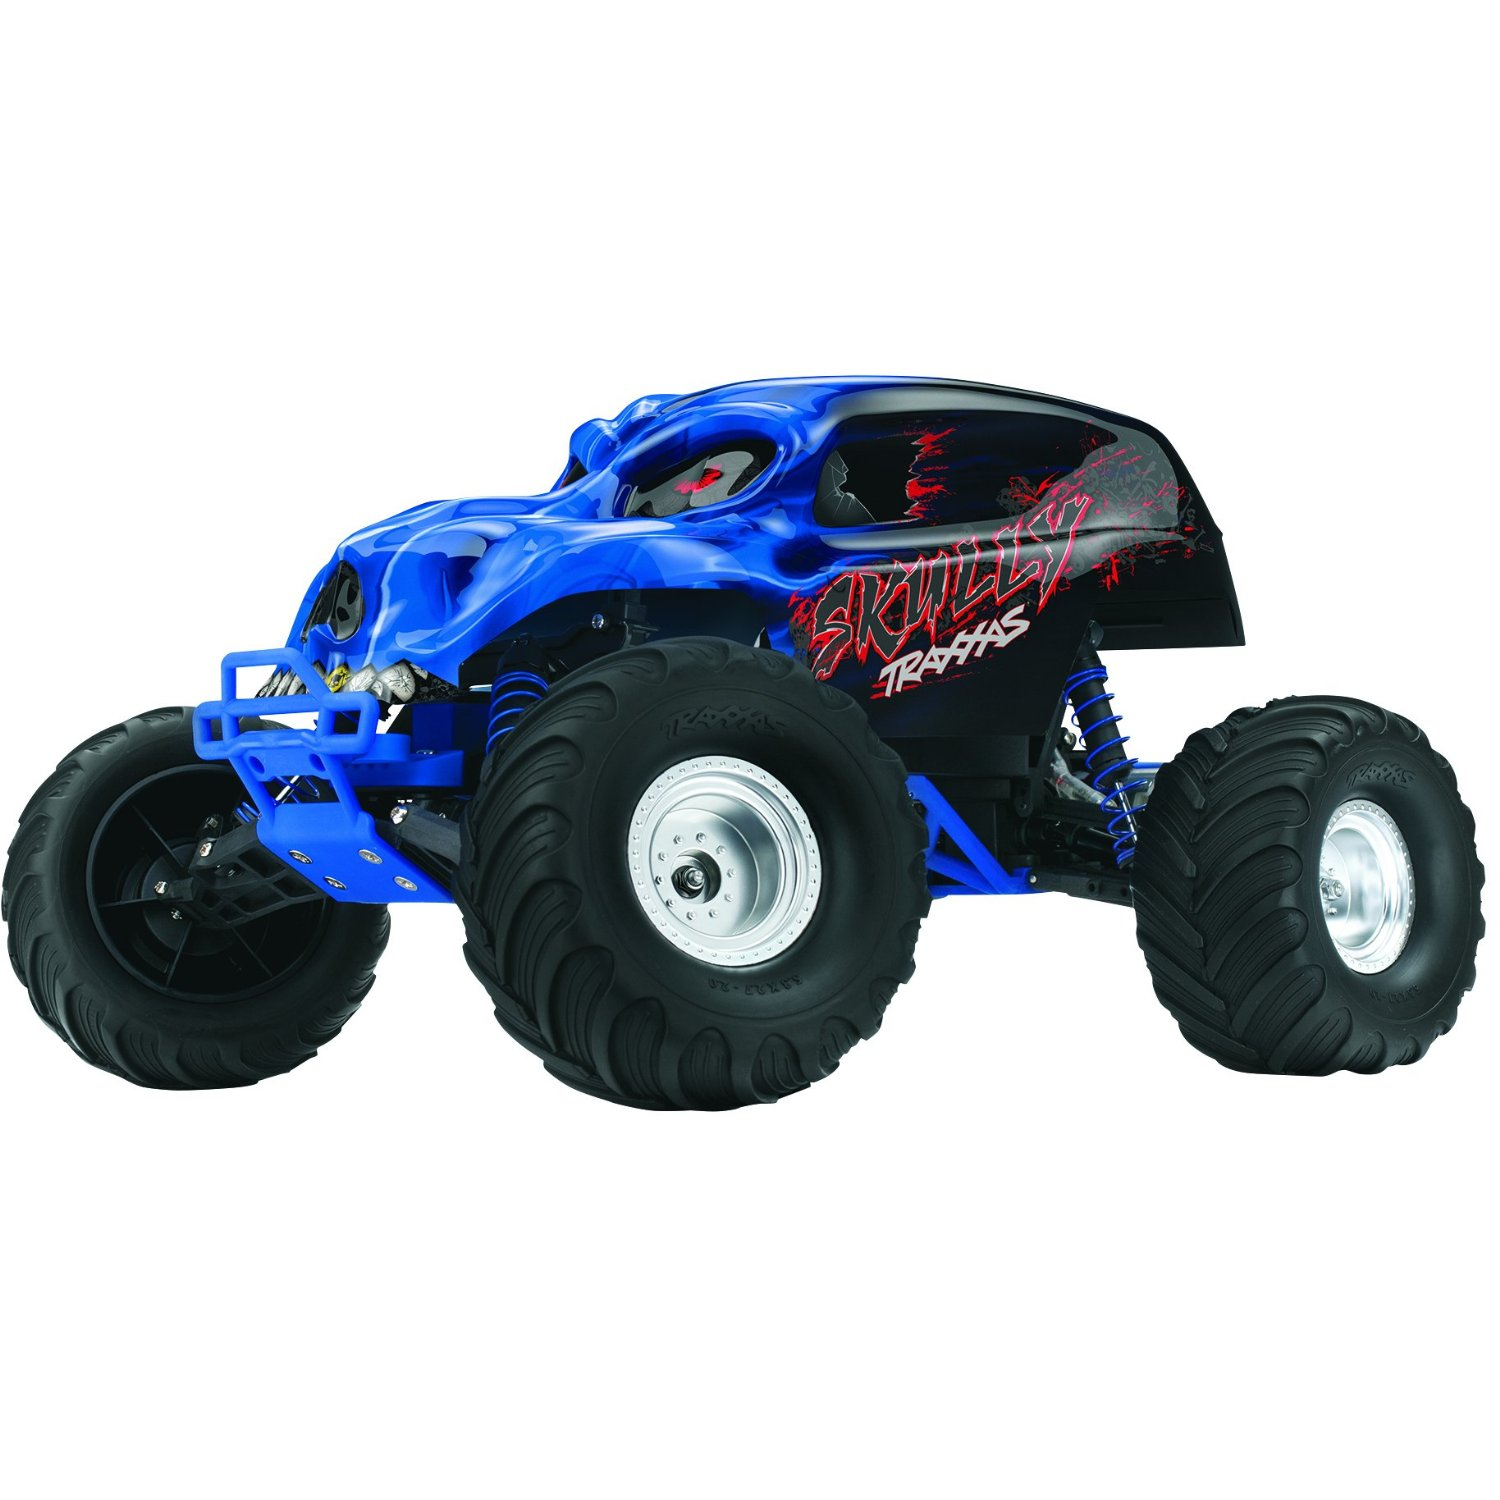 1/10 Skully RTR TQ 2.4GHz